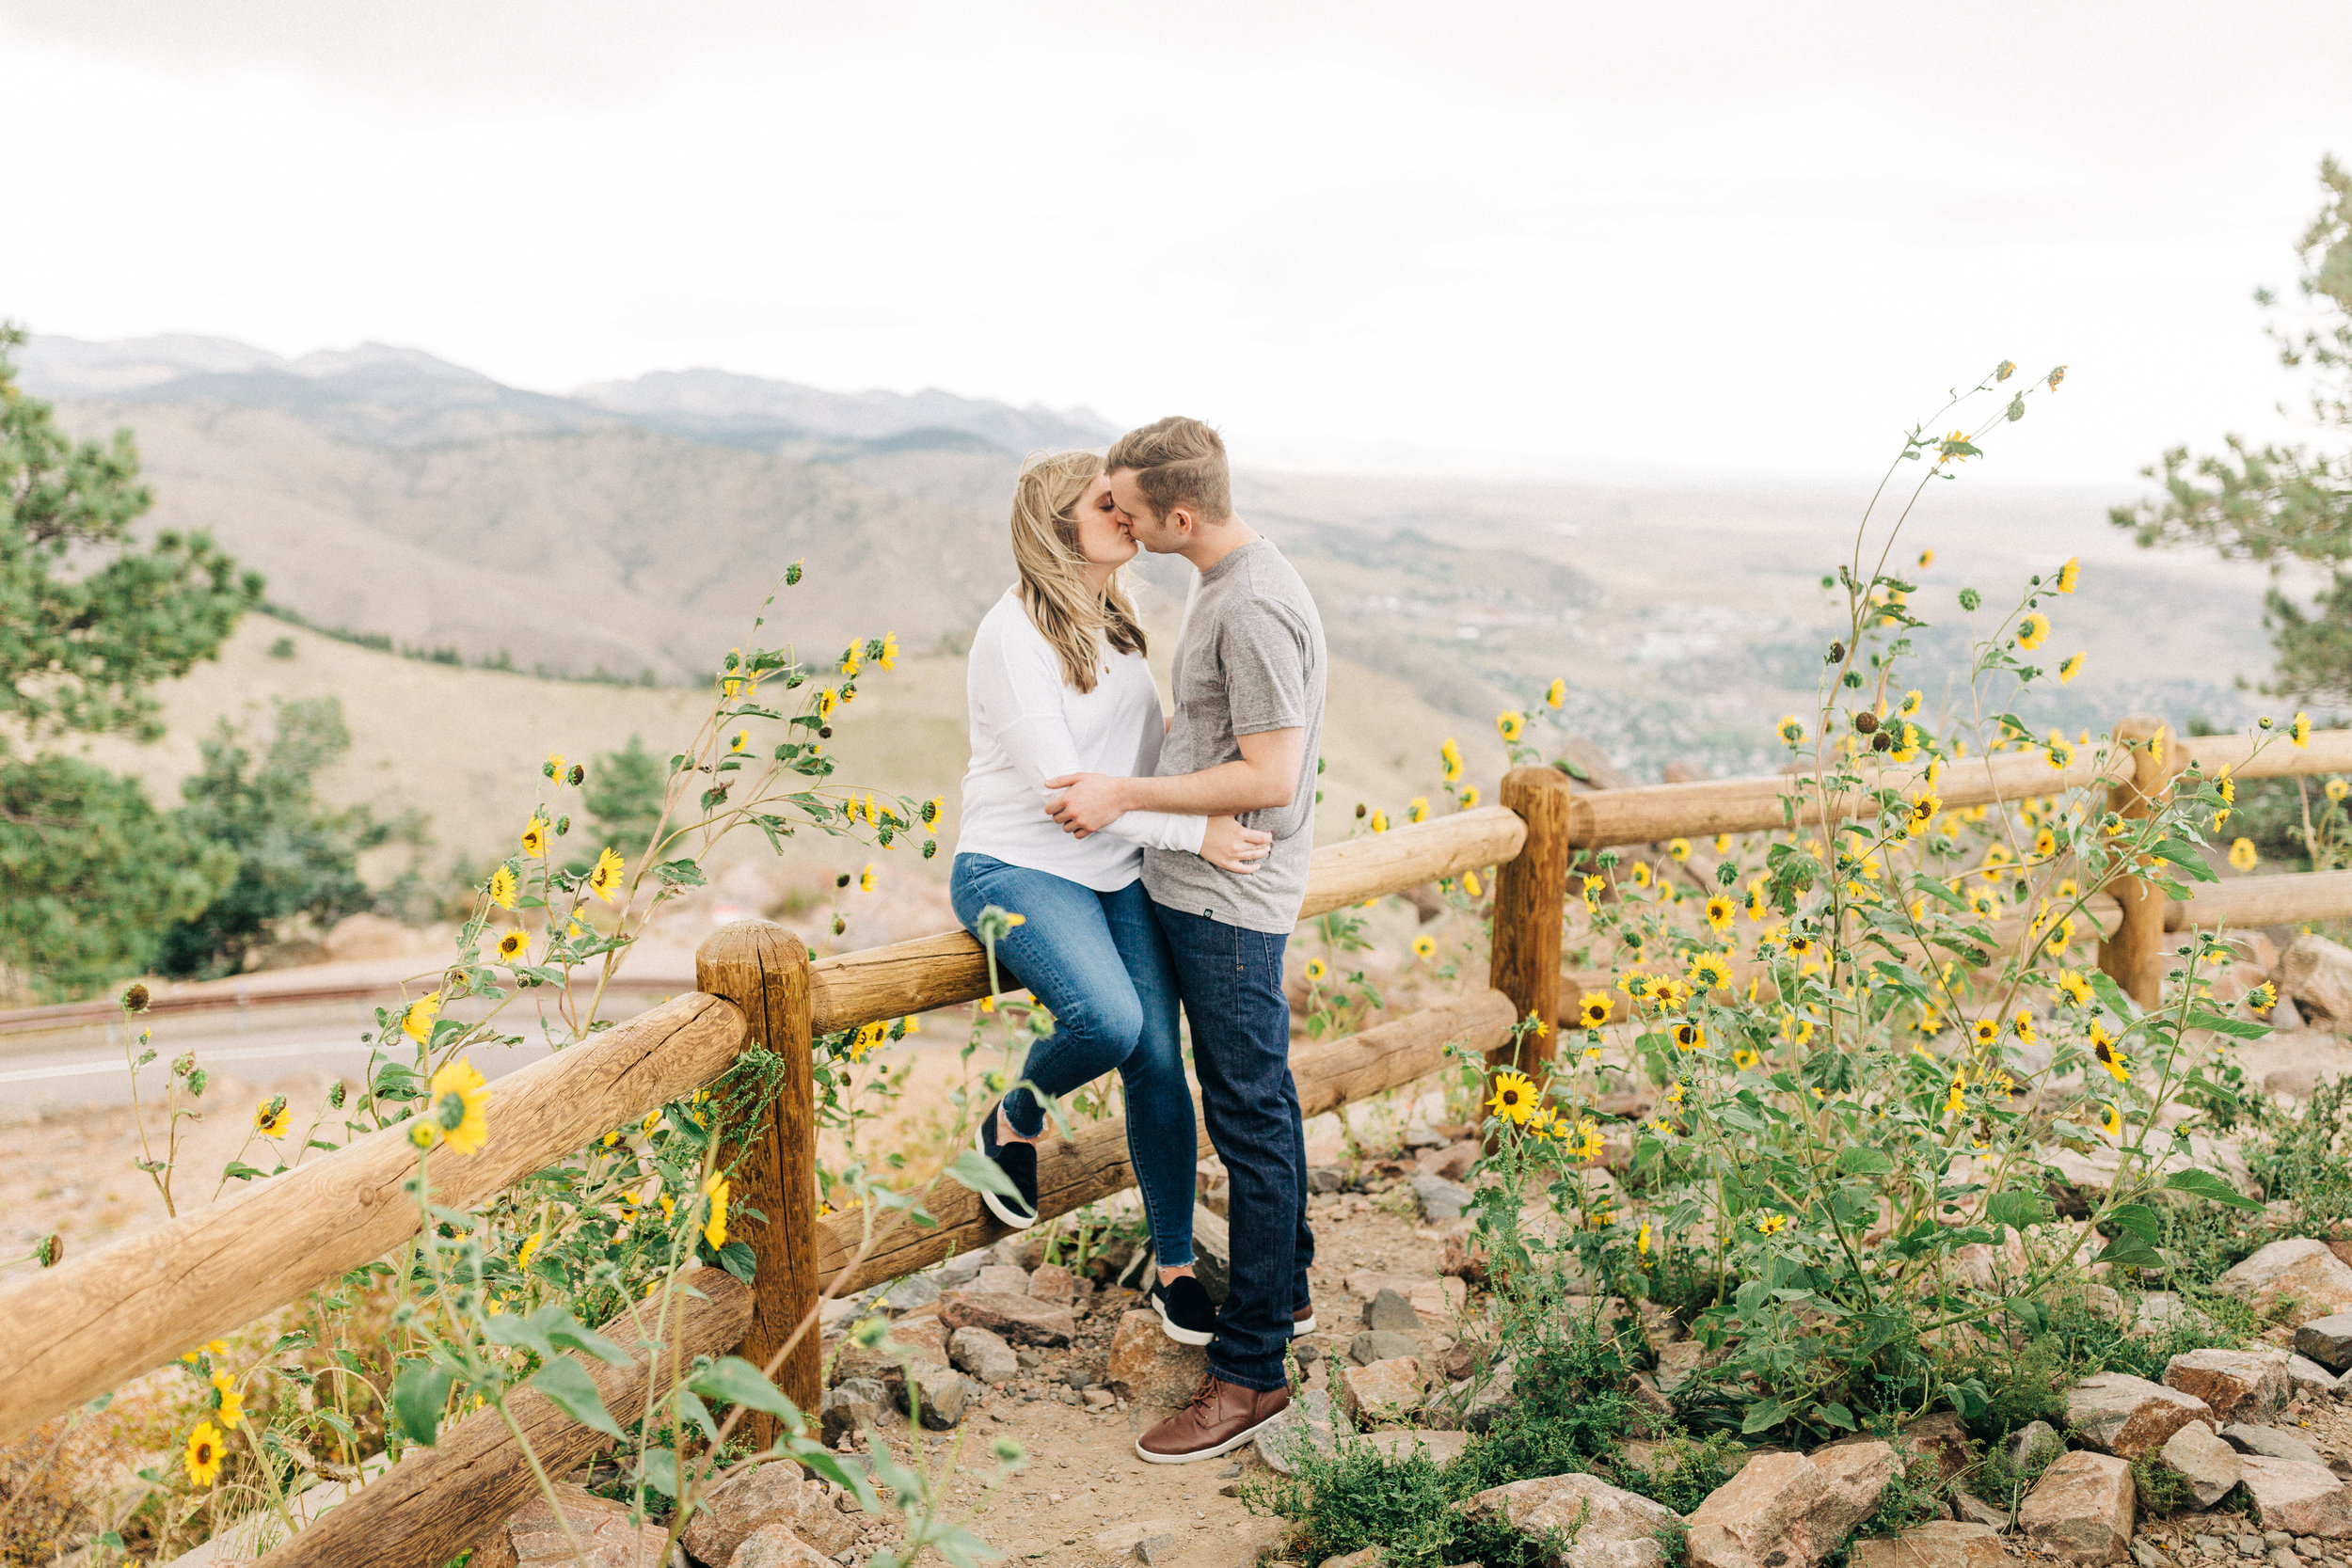 Dorothy_Louise_Photography_Lookout_Mountain_Colorado_Engagement_Gennie_Sean-131.jpg